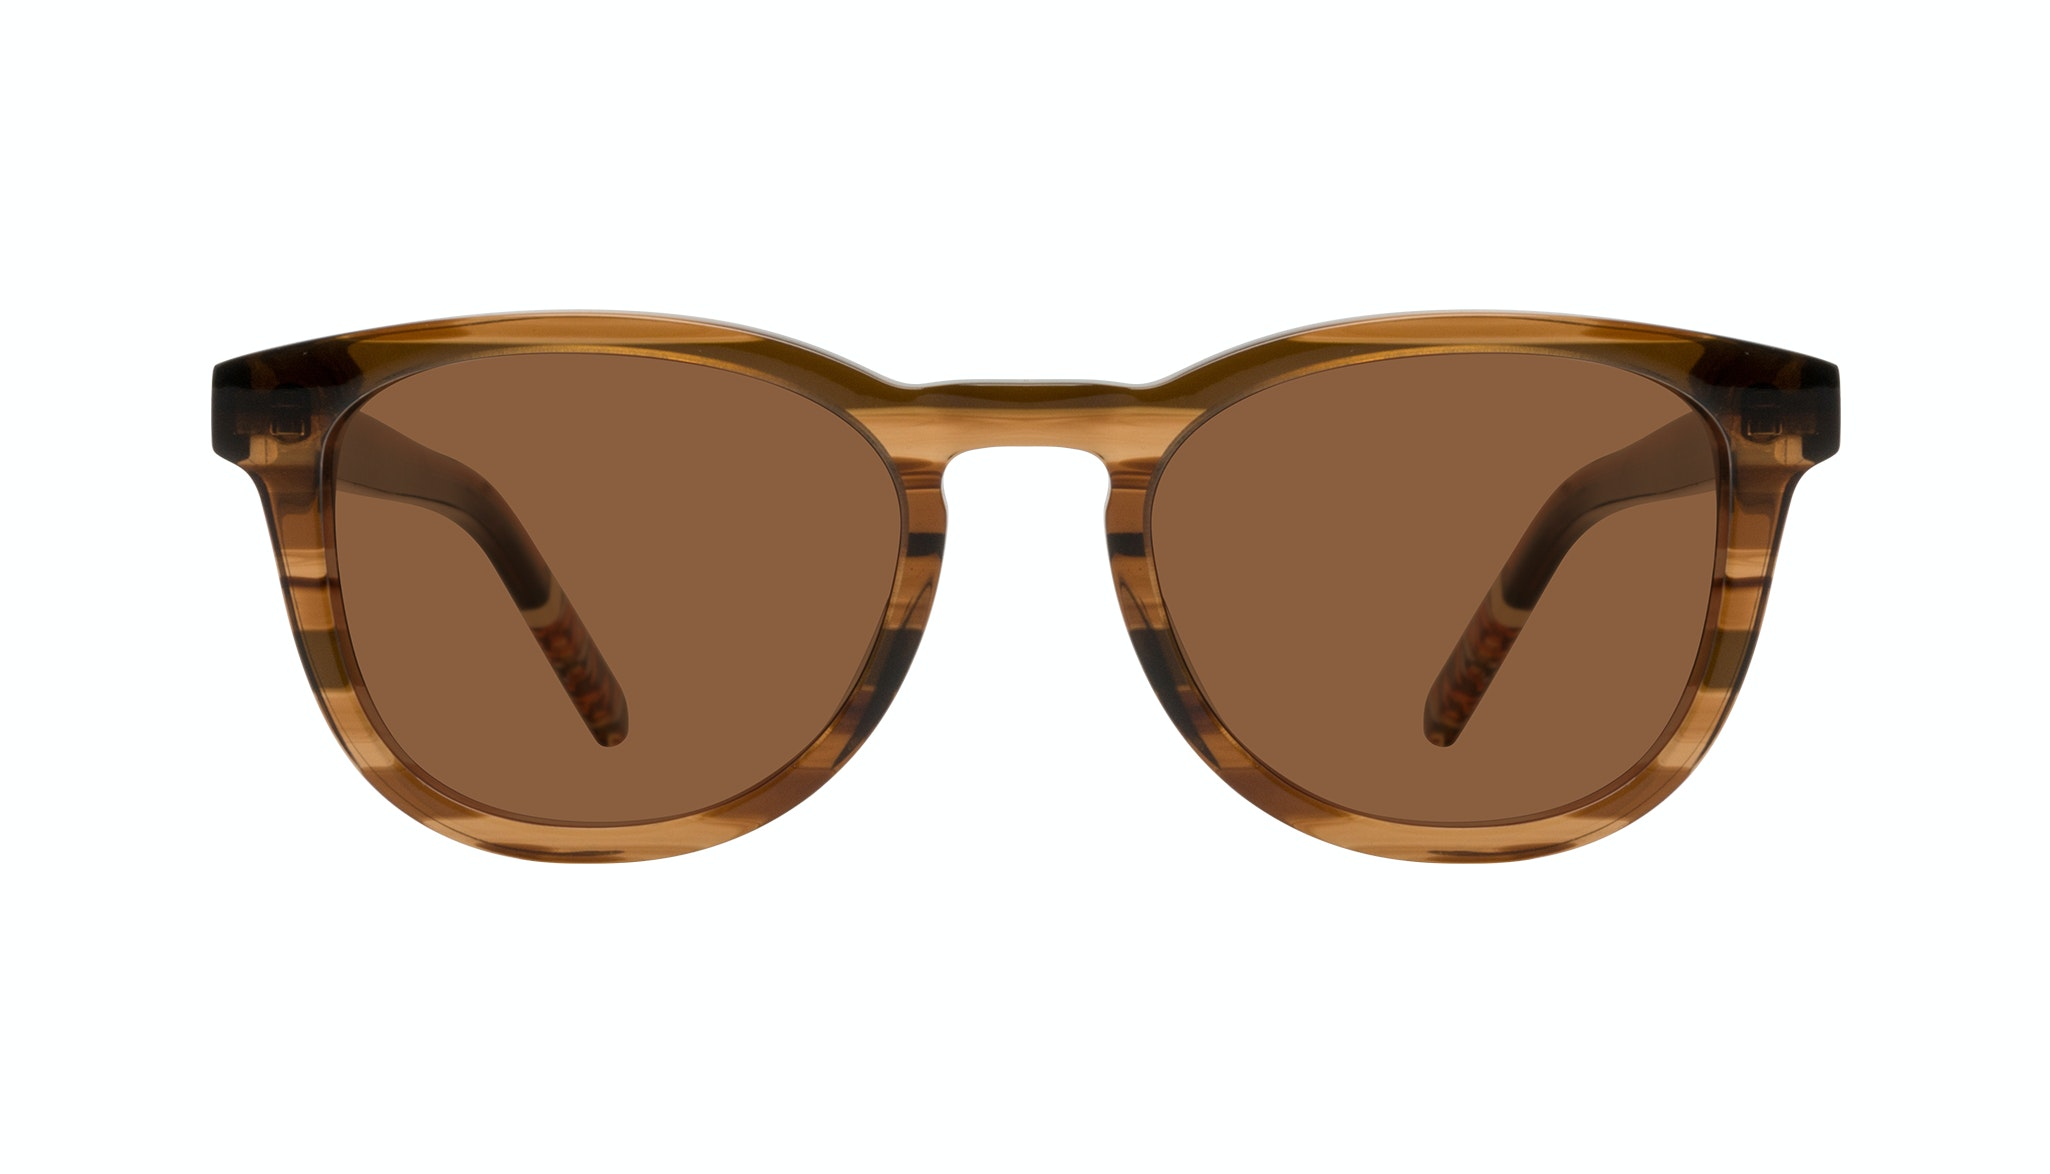 Affordable Fashion Glasses Round Sunglasses Men Goal Smokey Havana Front